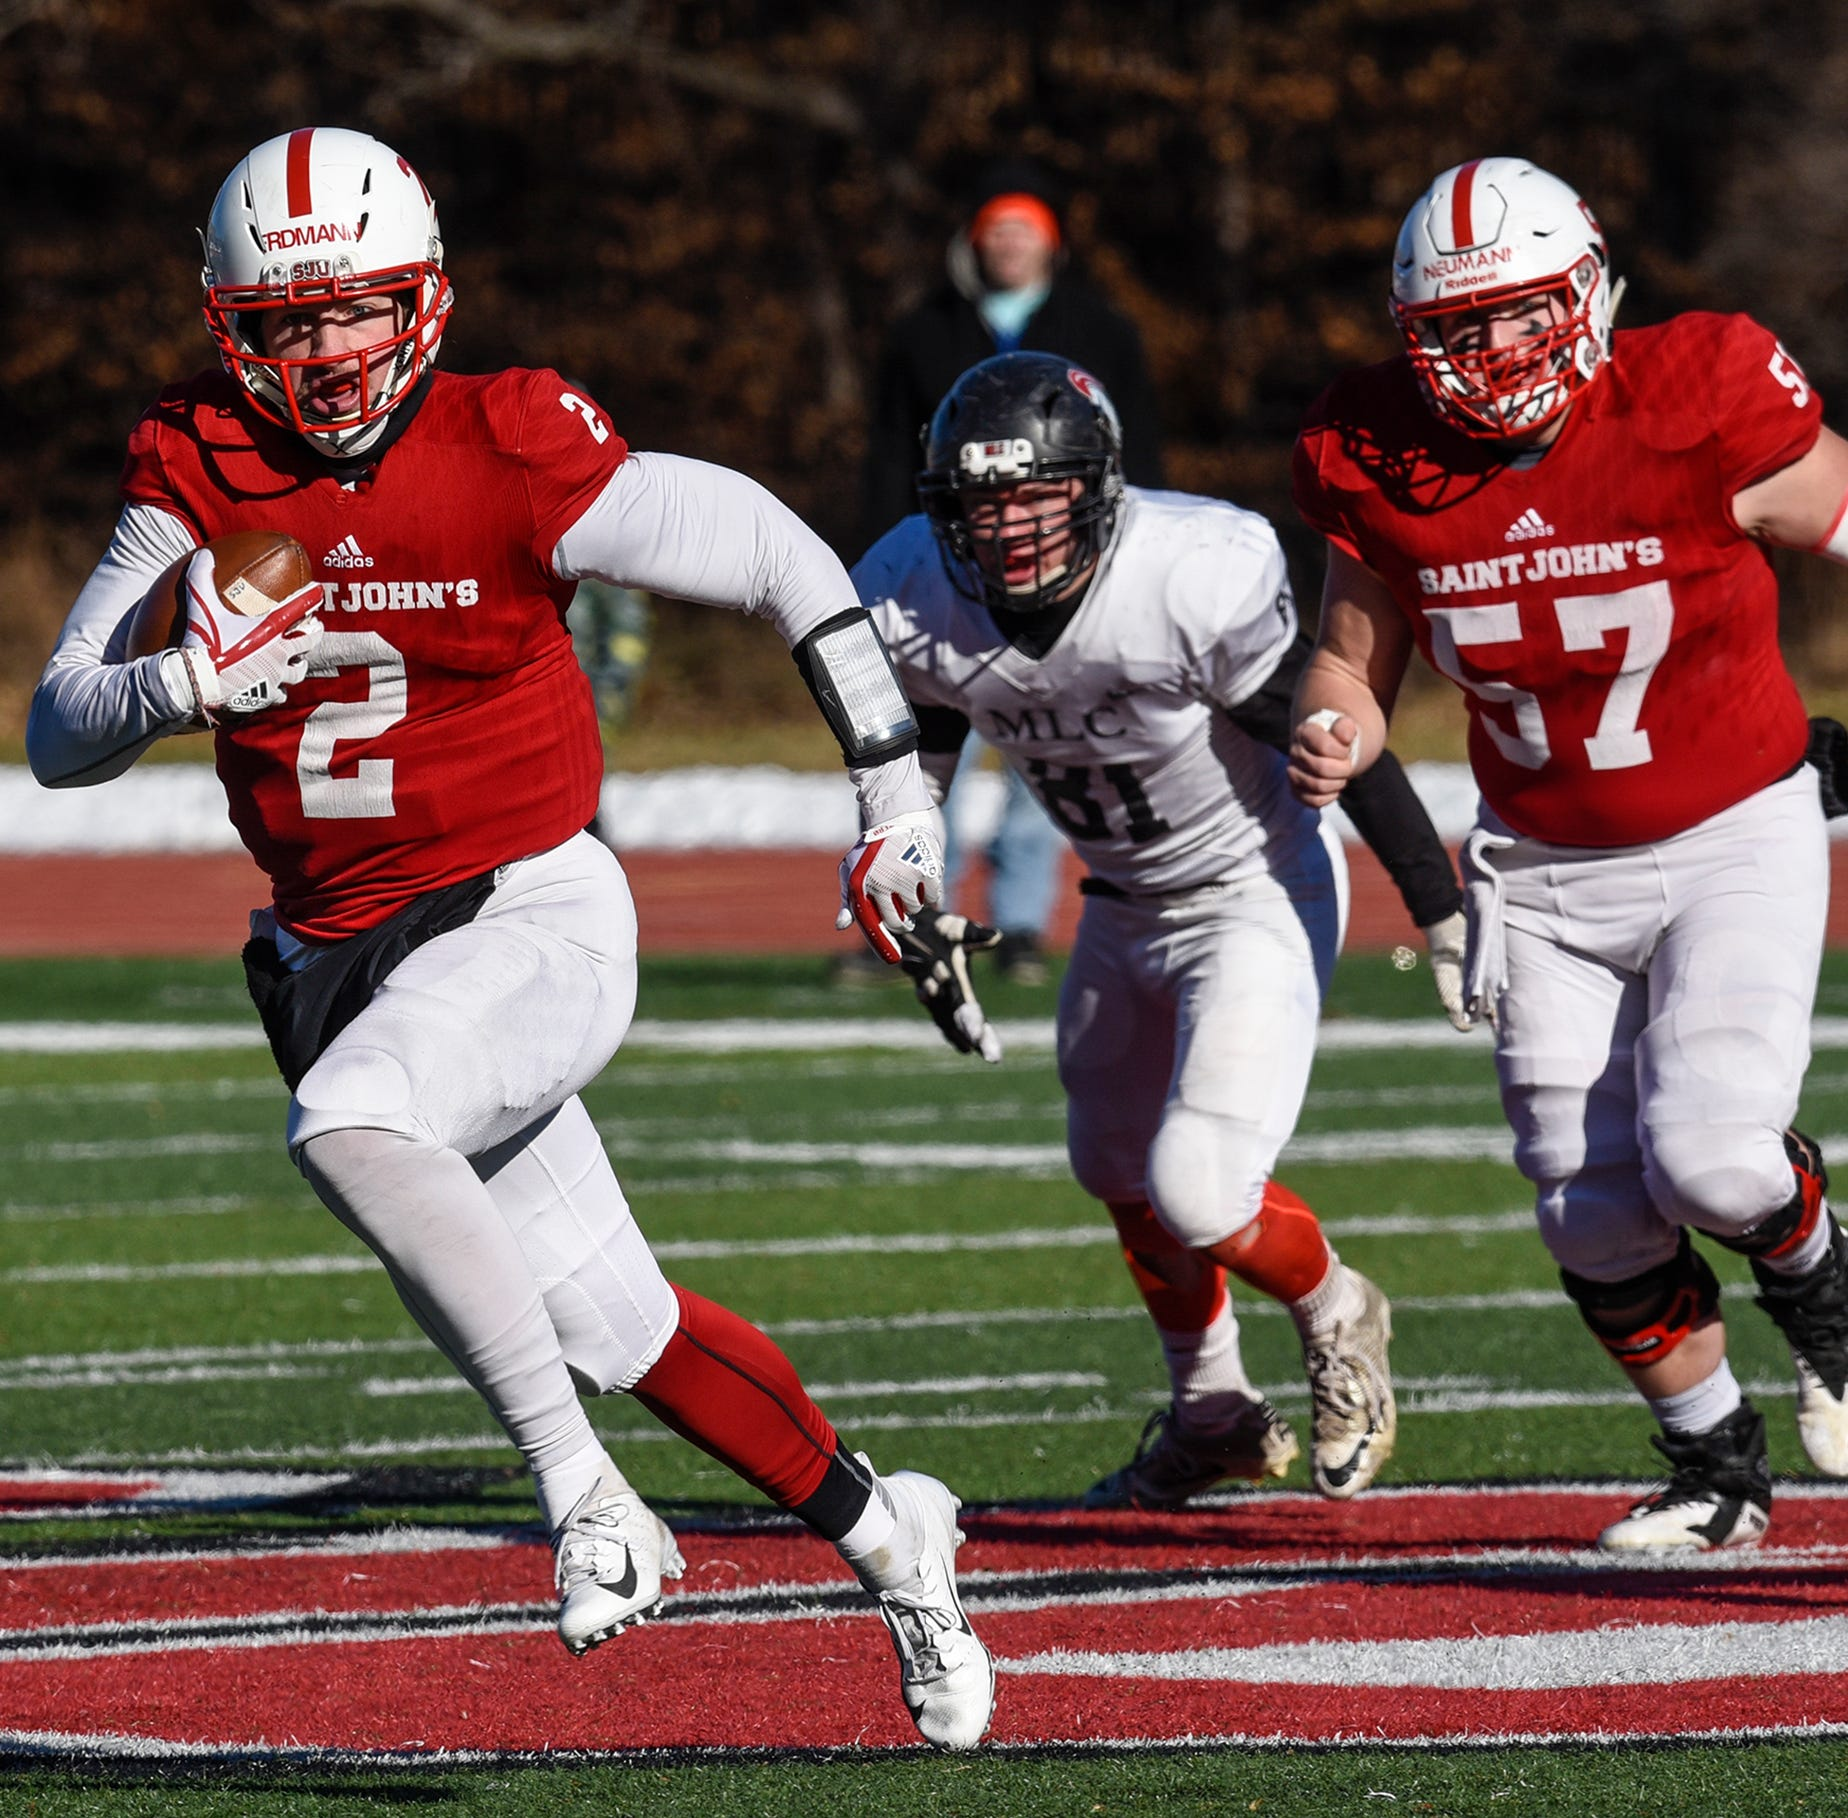 After near miss, SJU Johnnies already looking to 2019